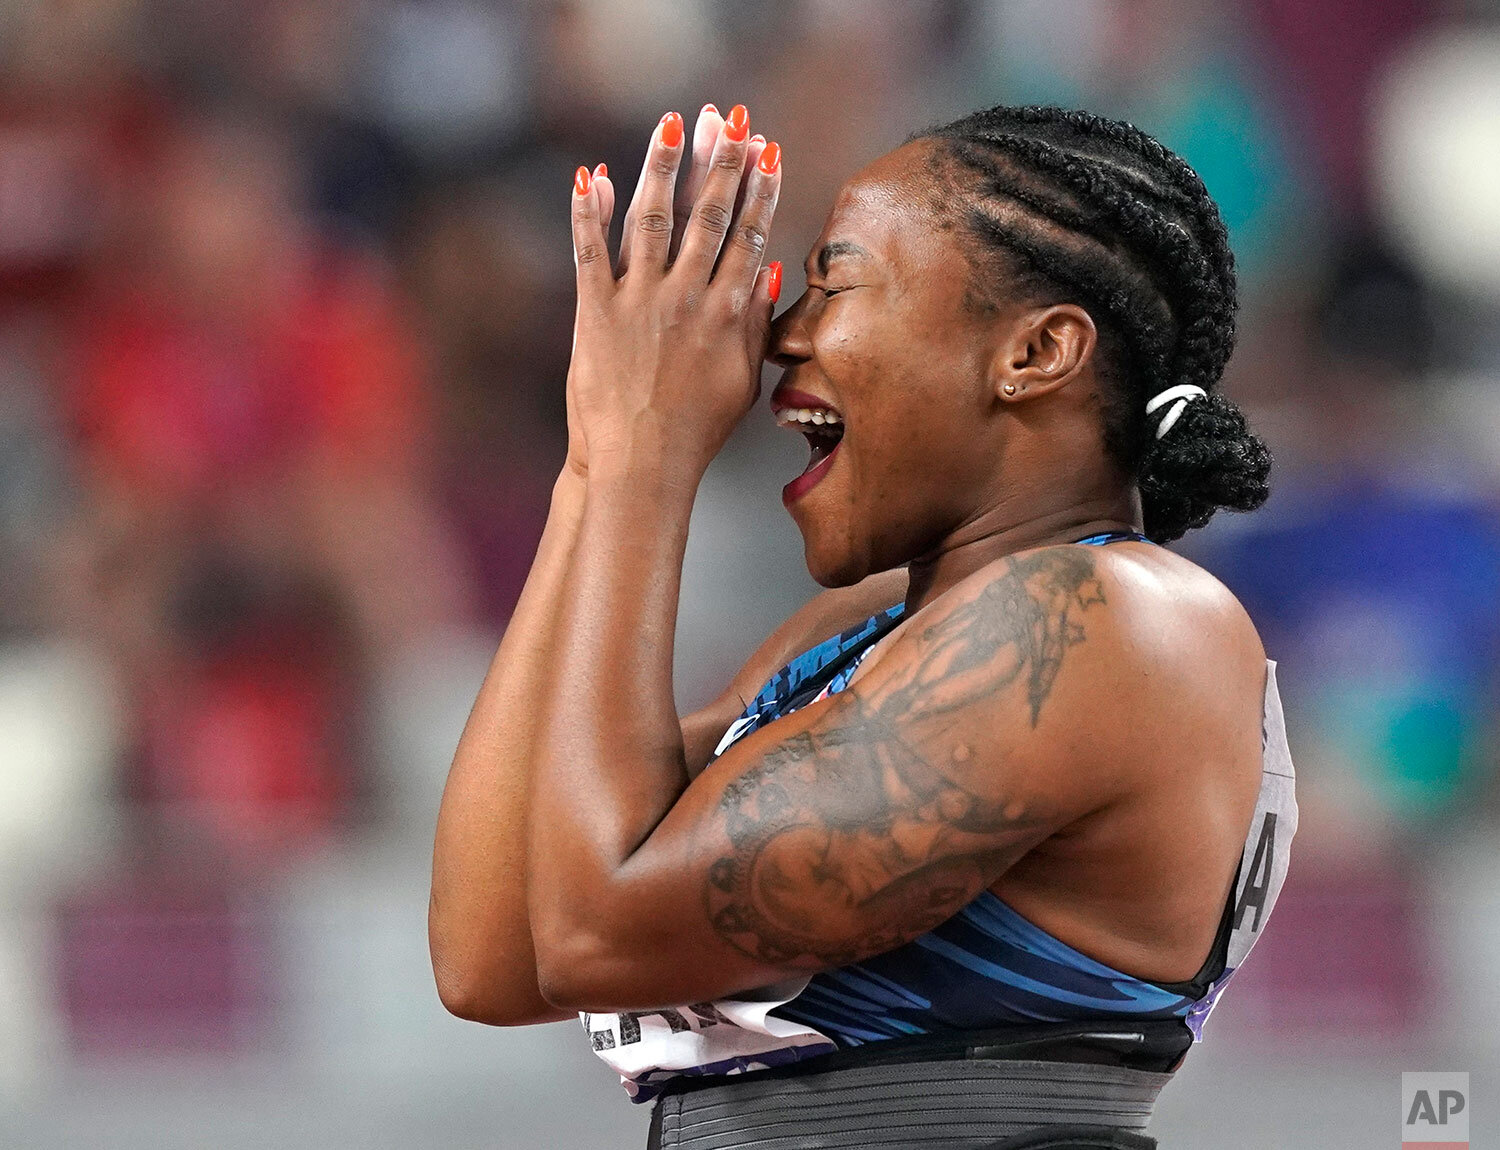 Alexie Alaïs, of France, reacts after competing in the women's javelin throw at the World Athletics Championships in Doha, Qatar, Monday, Sept. 30, 2019. (AP Photo/David J. Phillip)